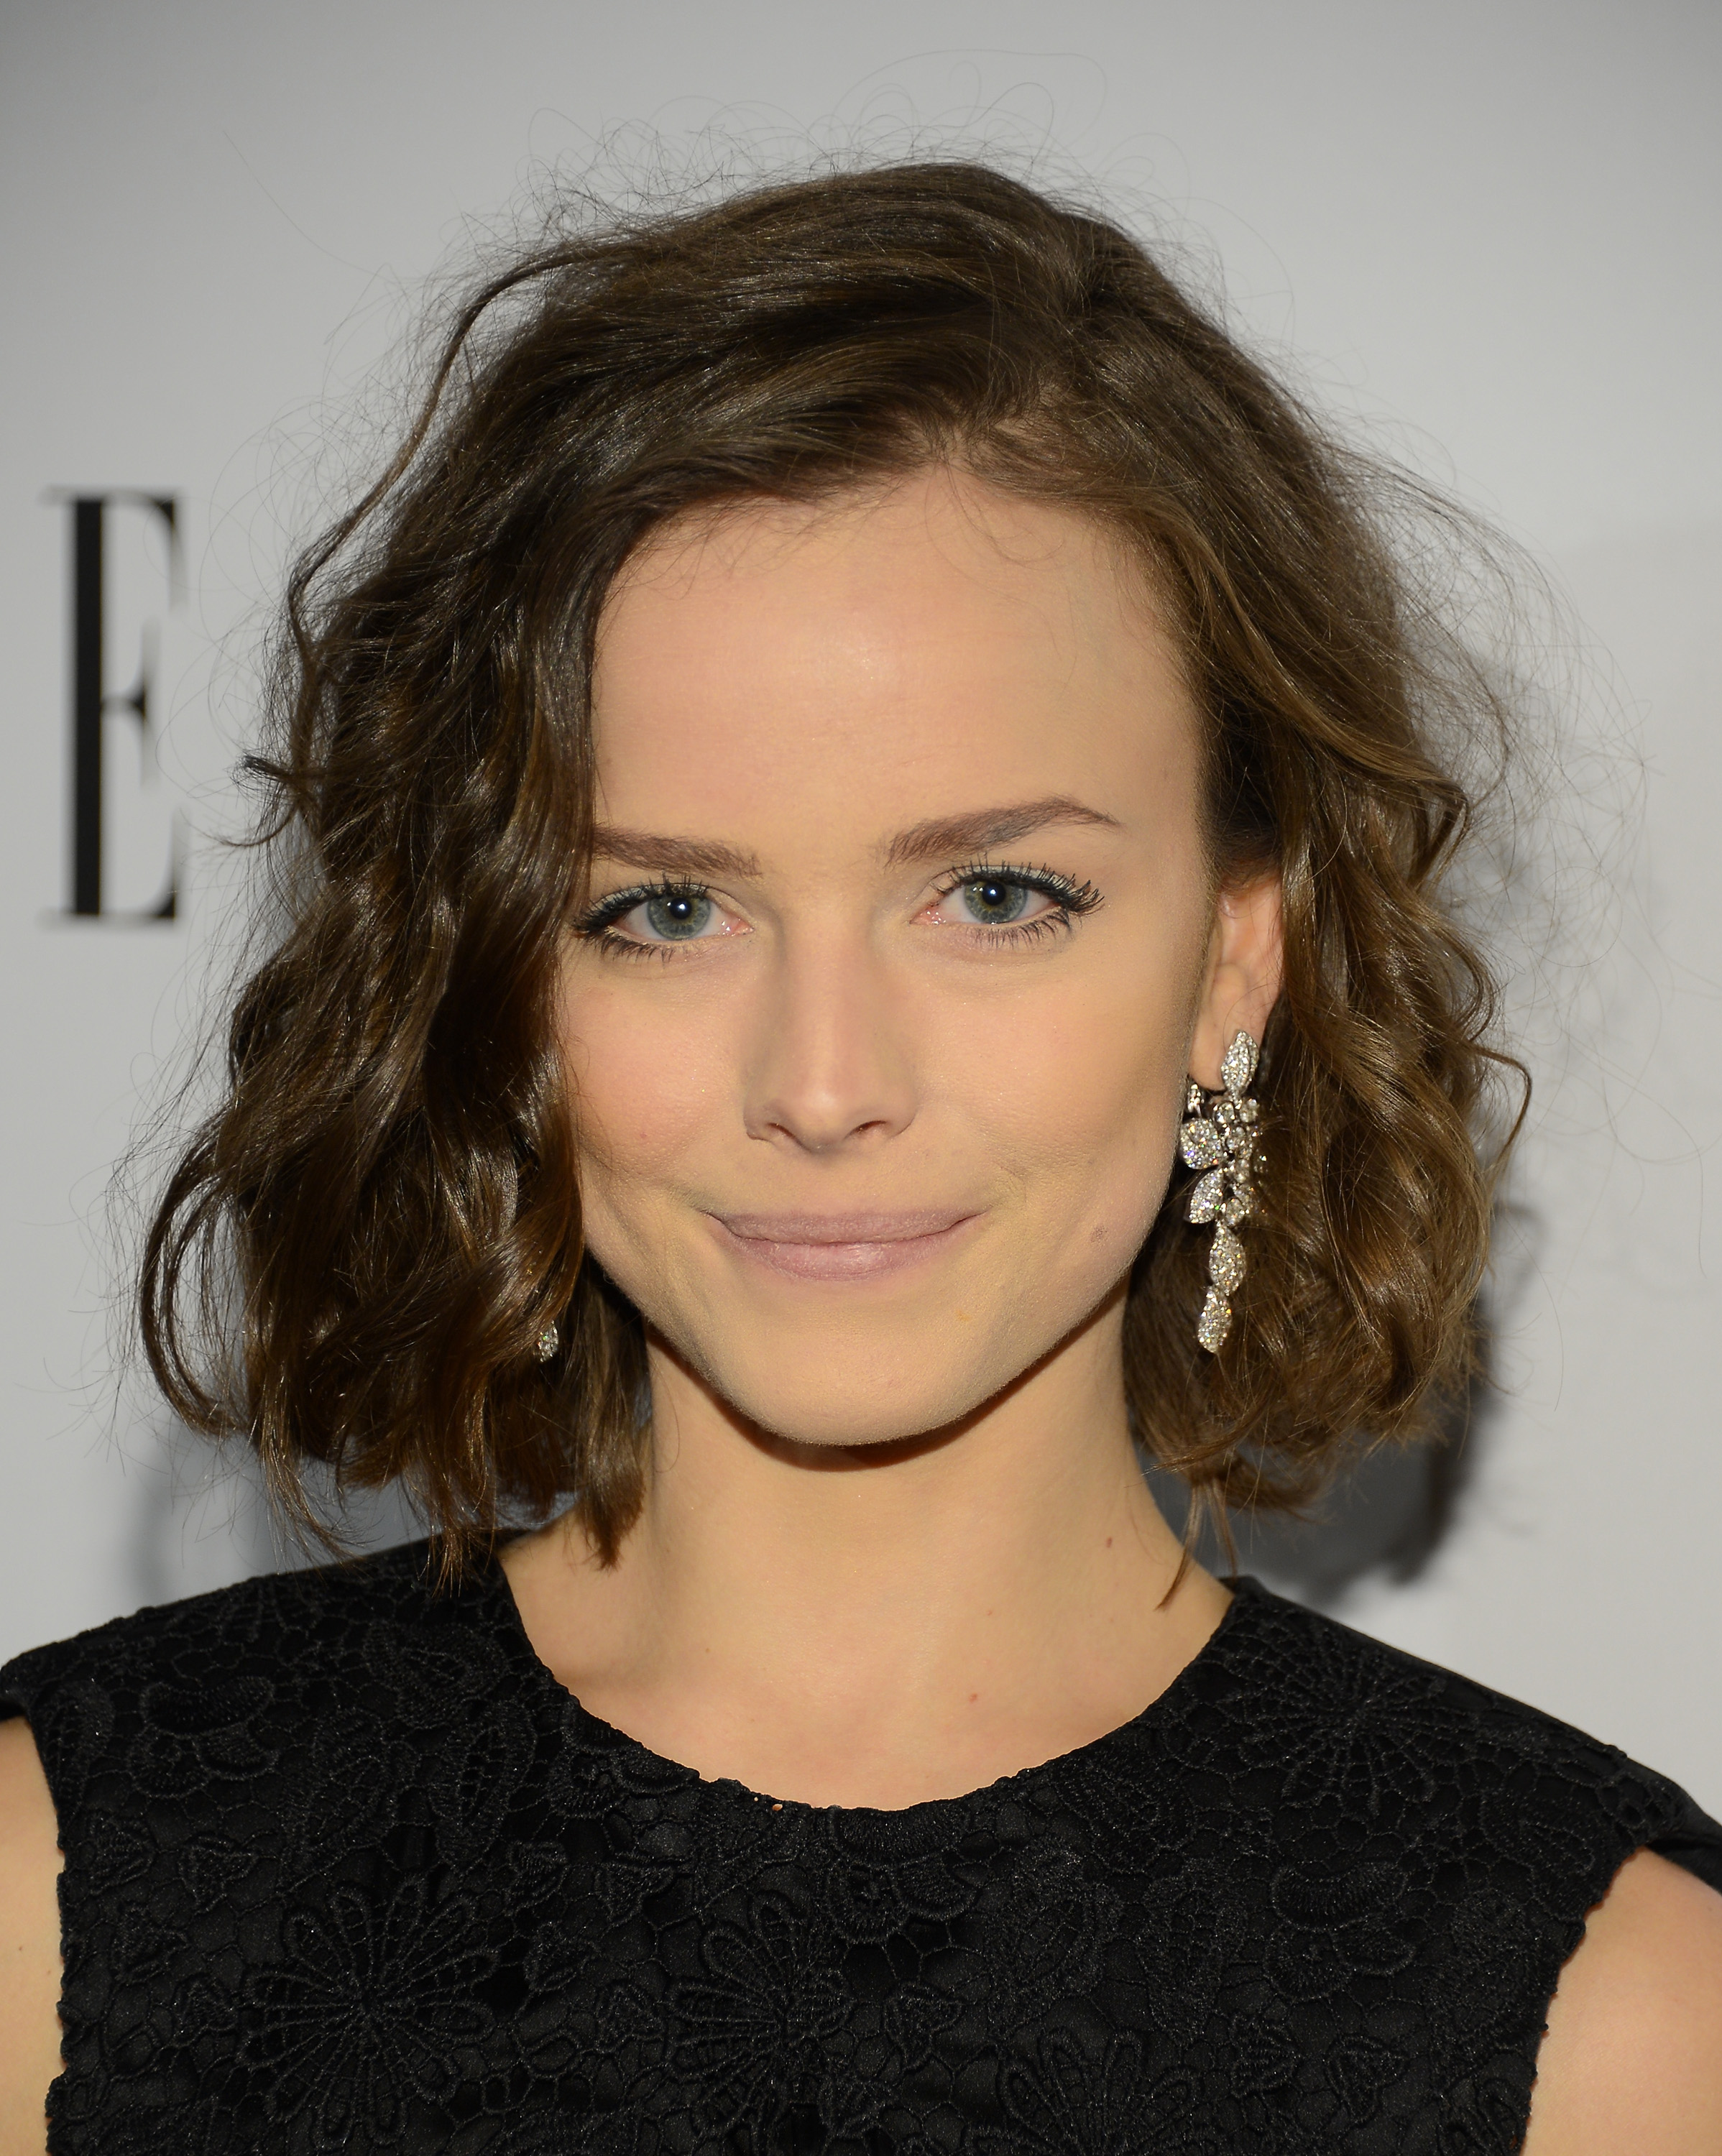 Actress Allison Miller attends the ELLE's Women in Television Celebration at Soho House on January 24, 2013 in West Hollywood, California.